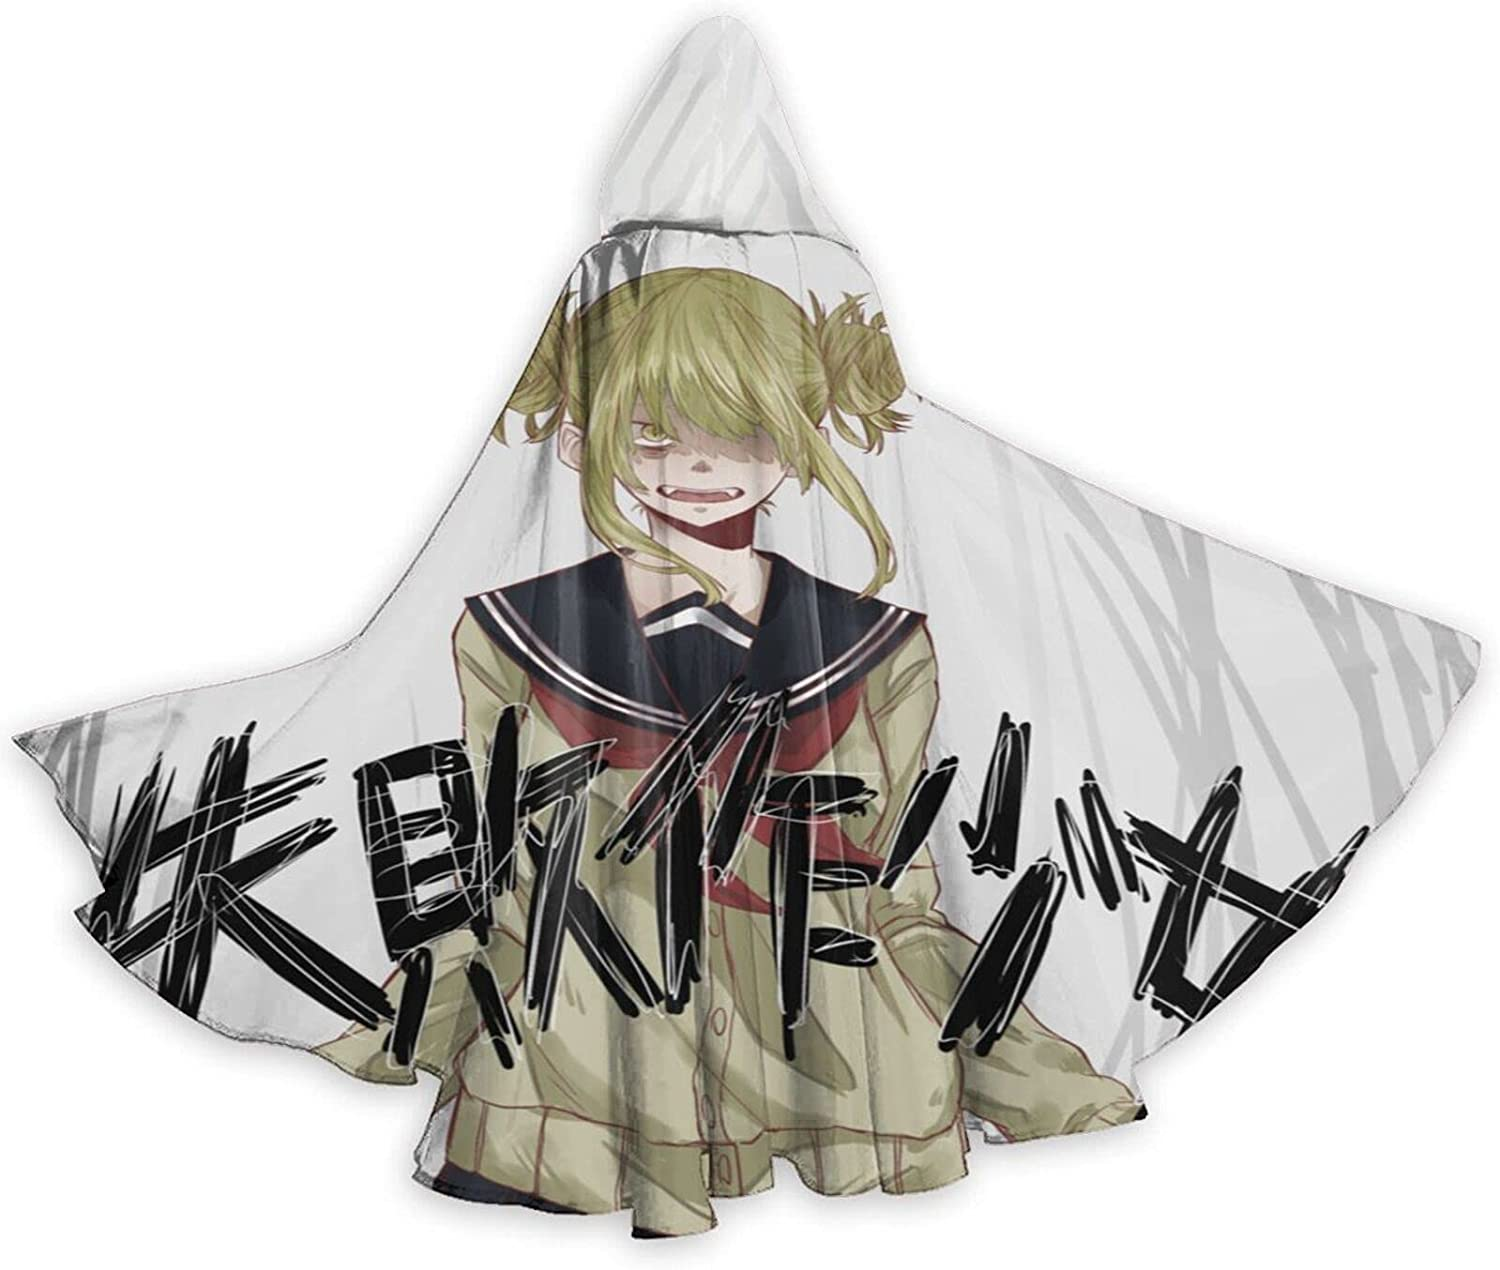 Ranking TOP18 Unisex Hi-Miko Toga Anime Hooded Cos Cloak Halloween Robe Wizard Large discharge sale